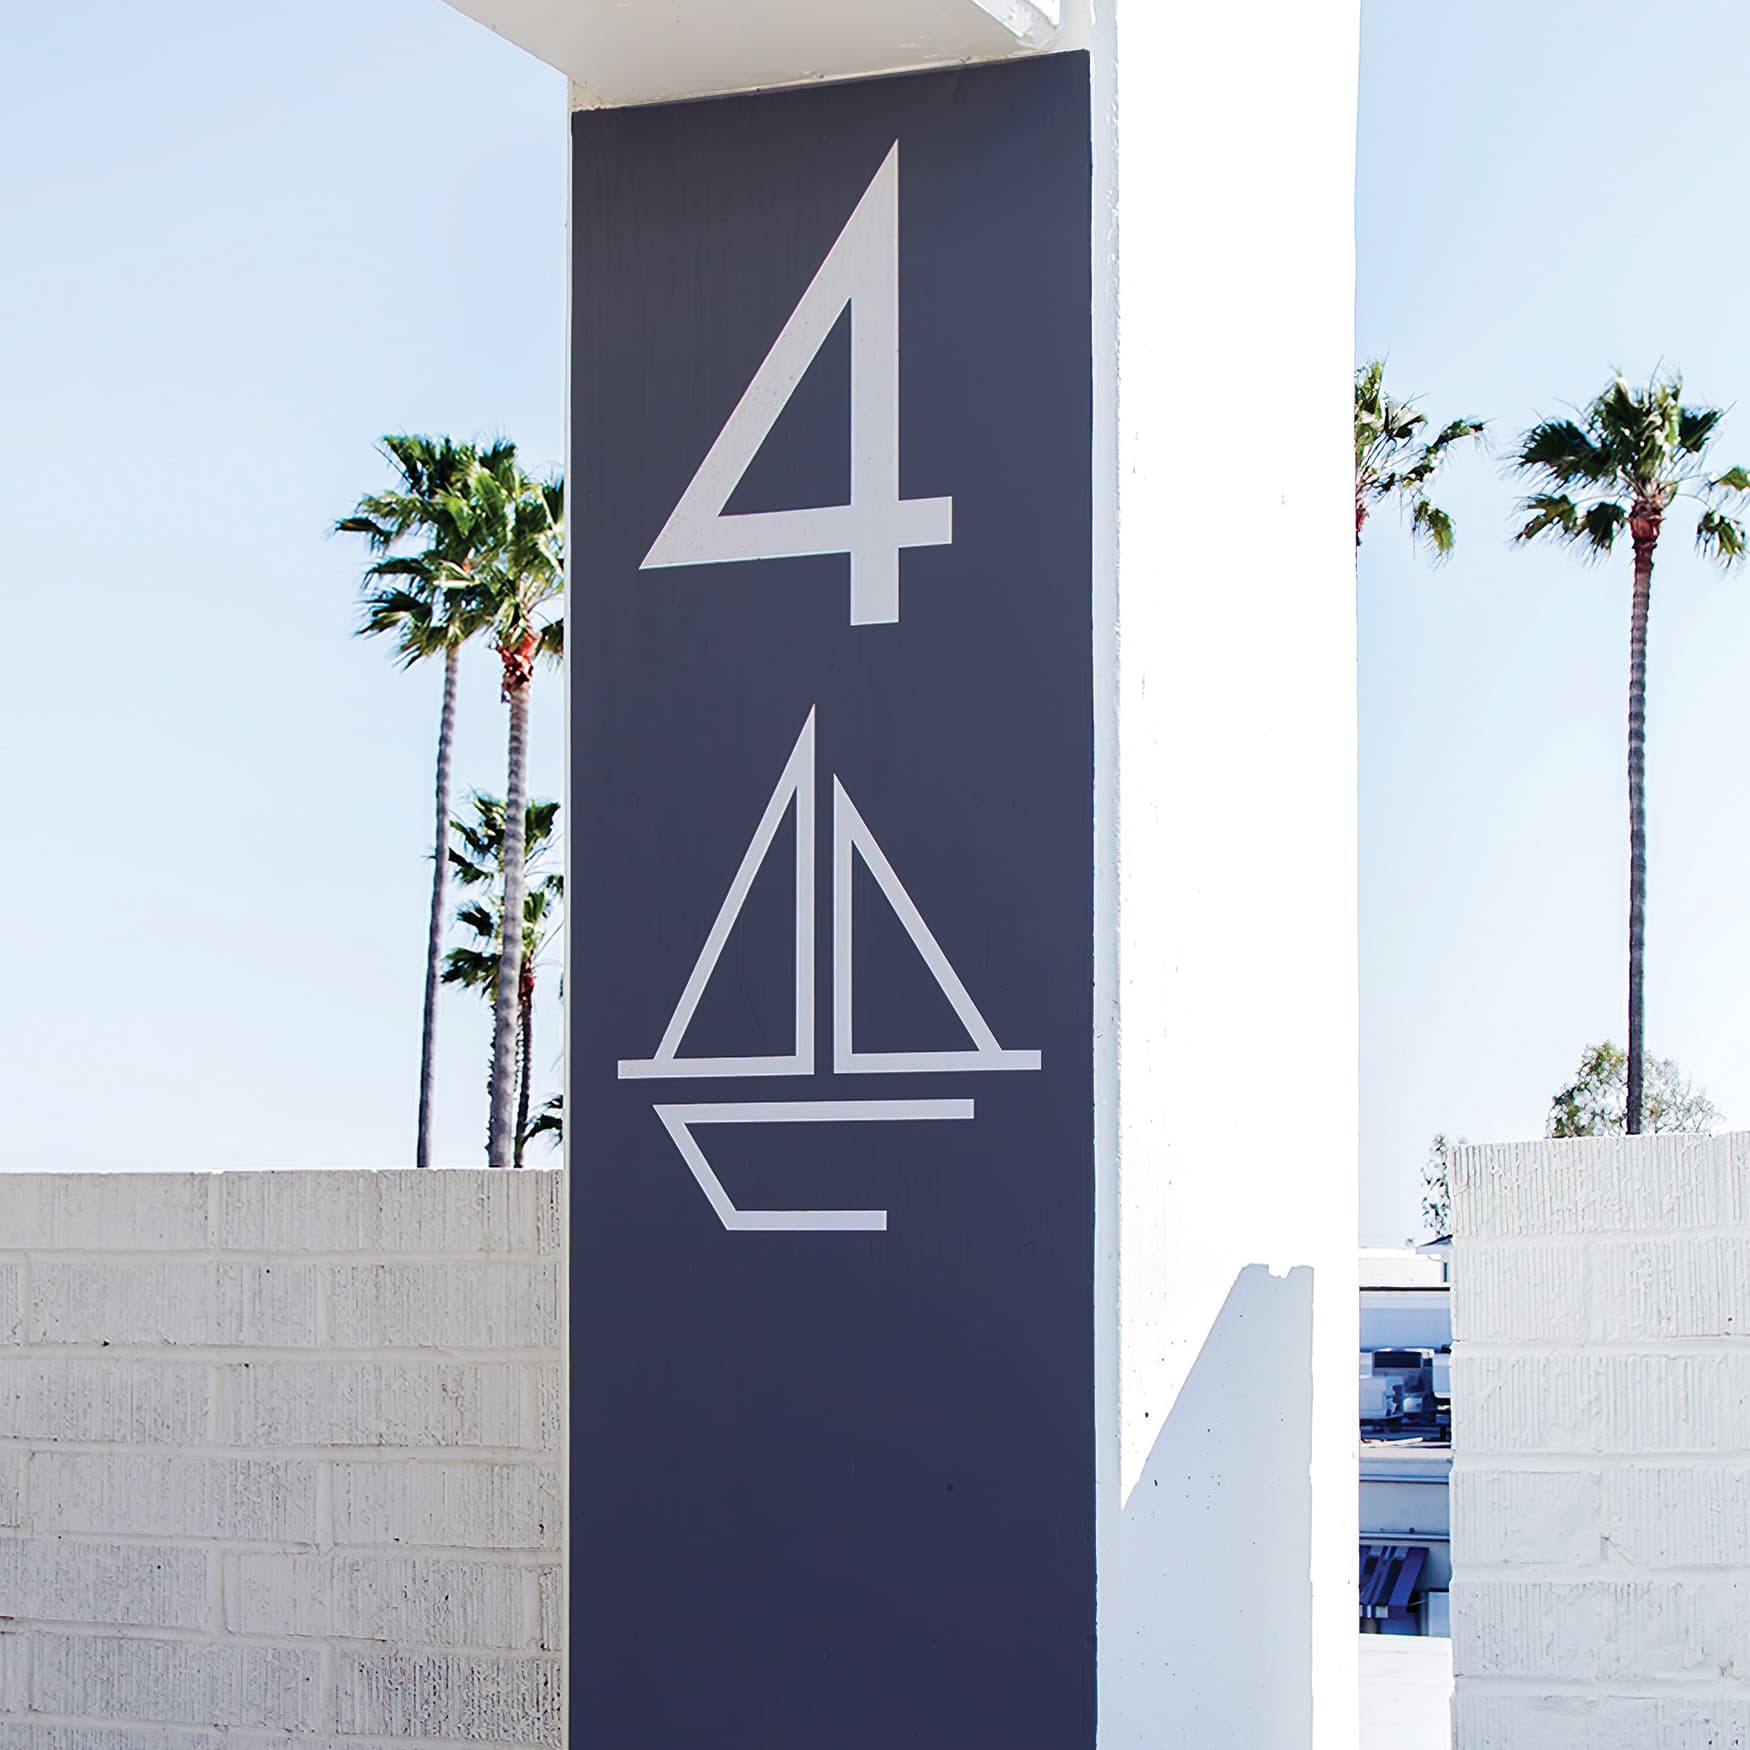 Lido Marina parking identity graphics by RSM Design